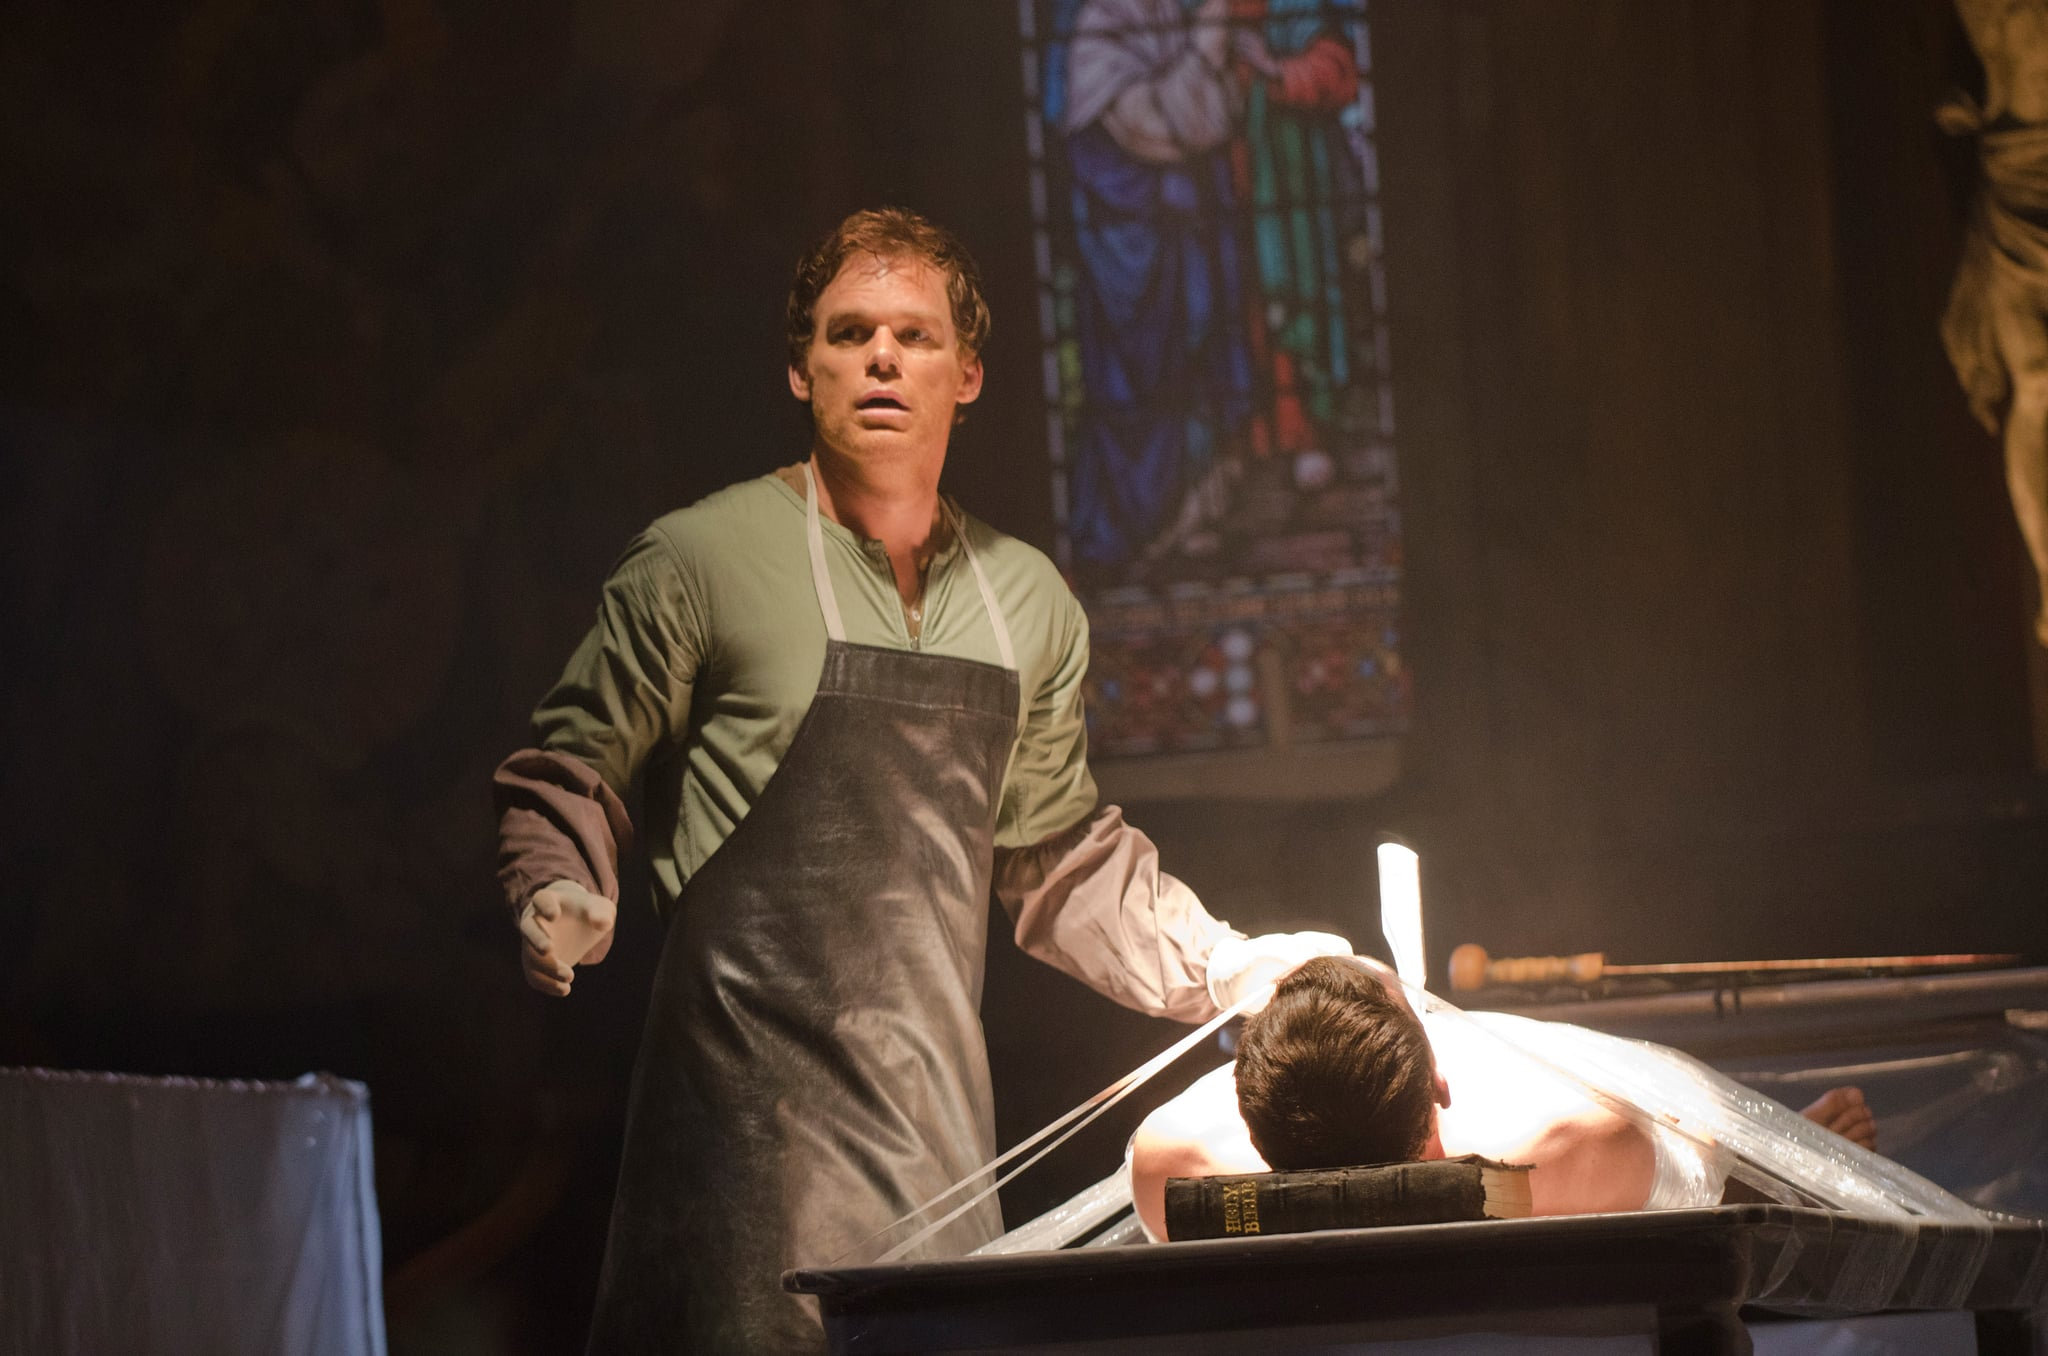 DEXTER, Michael C. Hall, 'Are You...?', (Season 7, ep. 701, airs Sept. 30, 2012), 2006-2013. photo: Randy Tepper /  Showtime / Courtesy Everett Collection